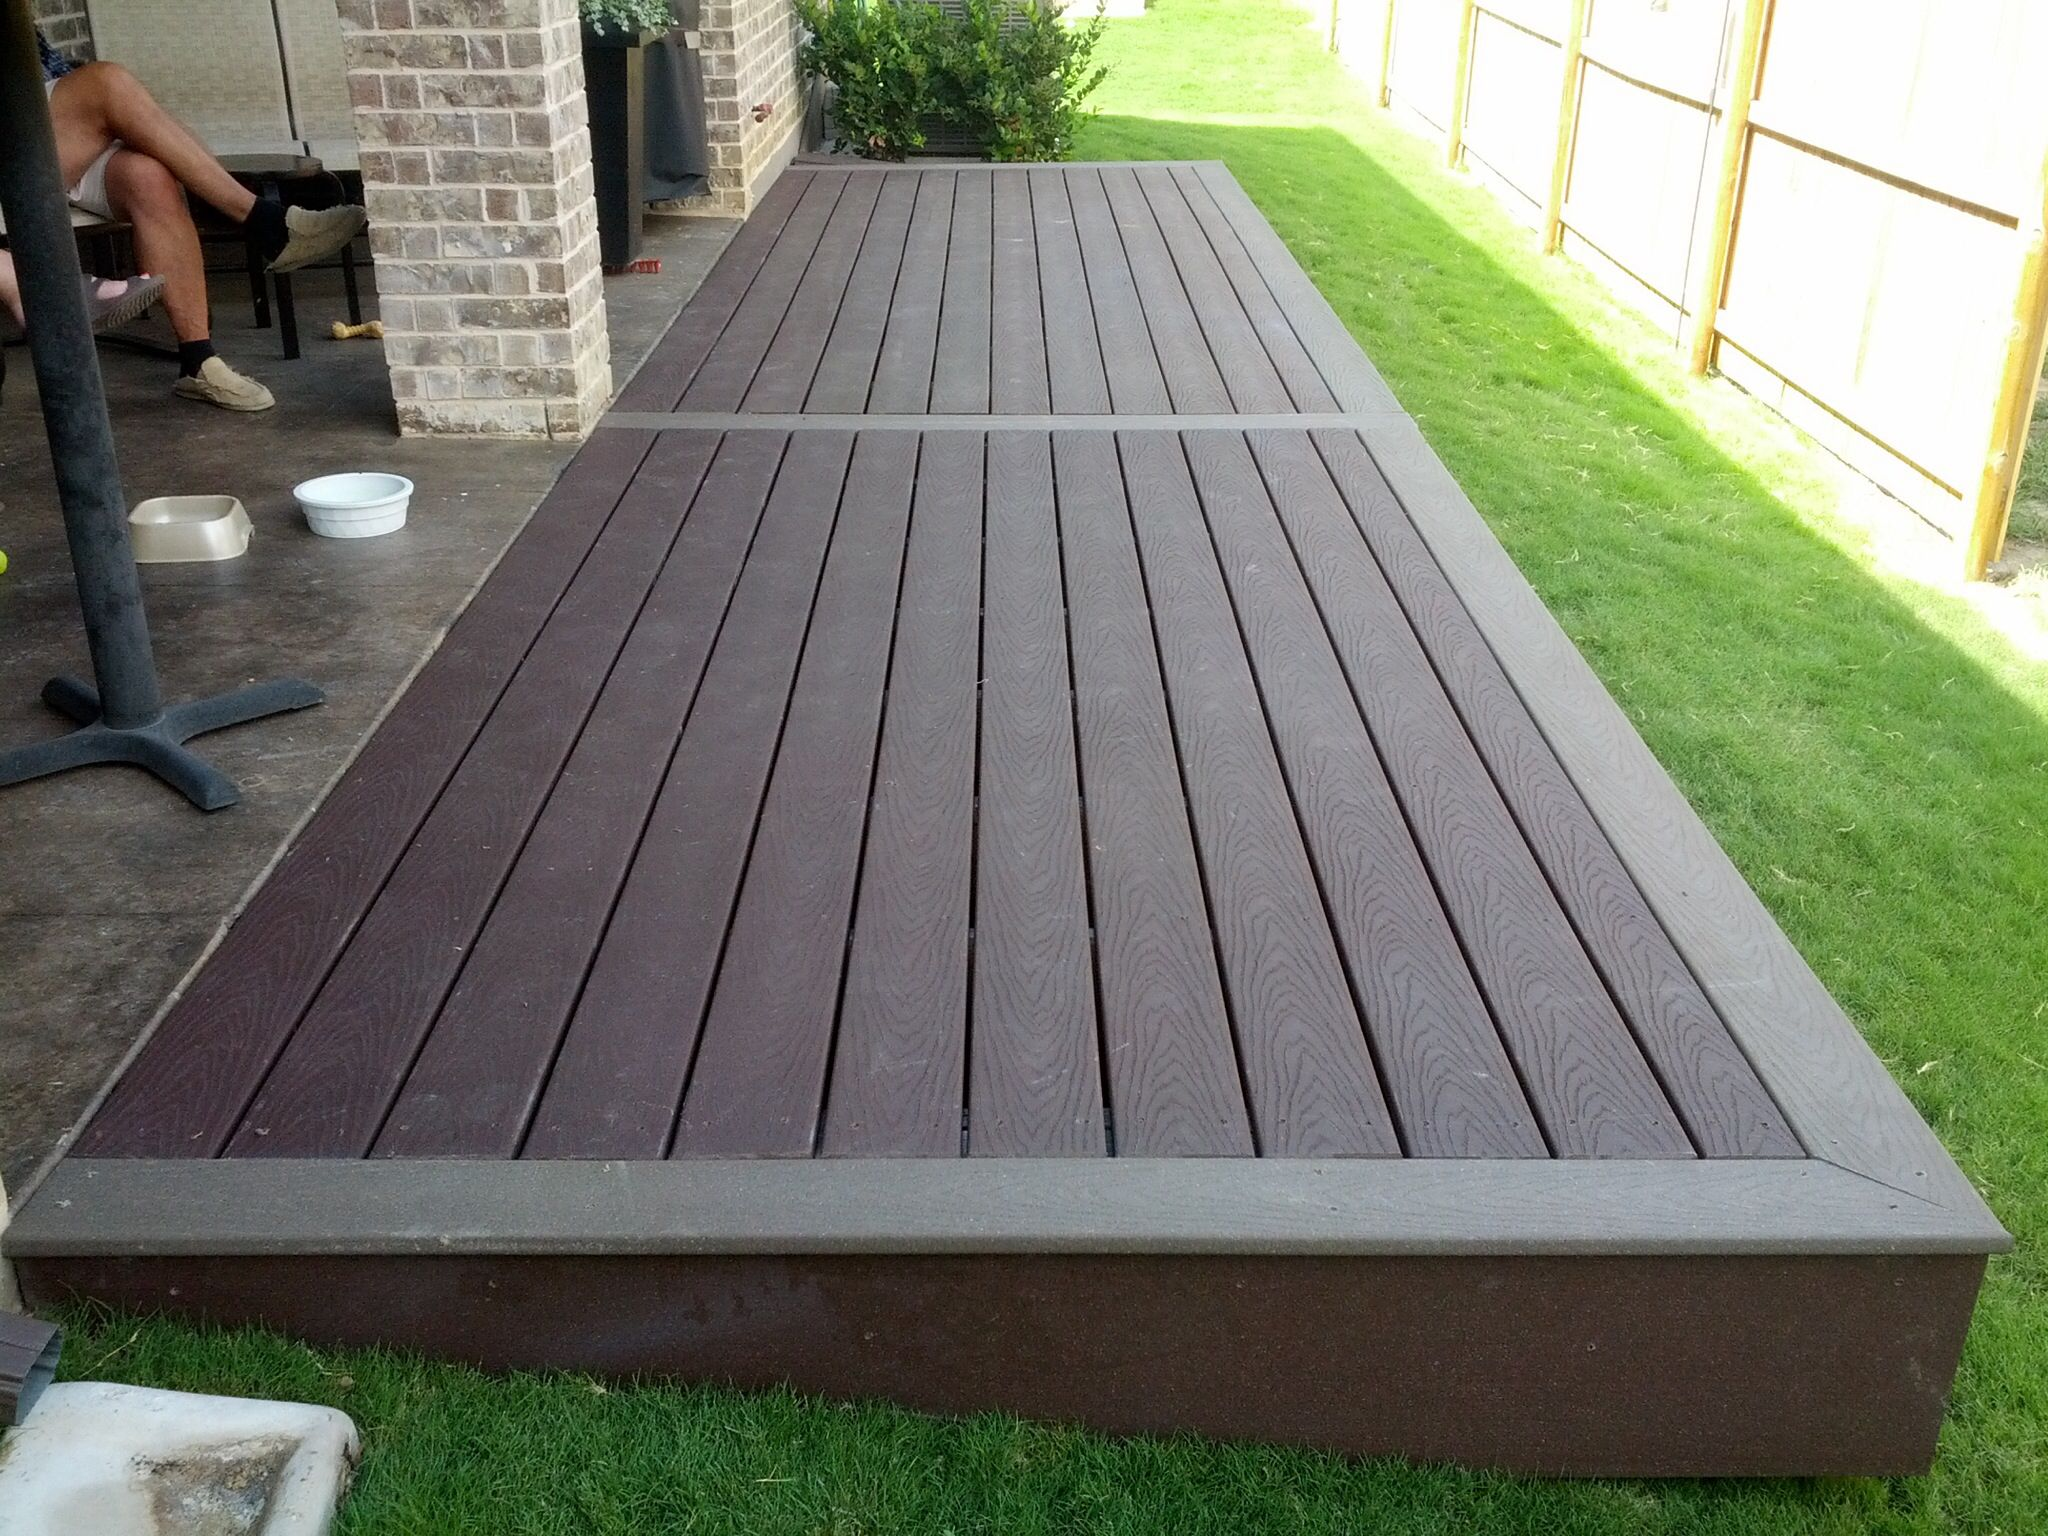 Global Composite Decking Market 2020 – The Daily Chronicle